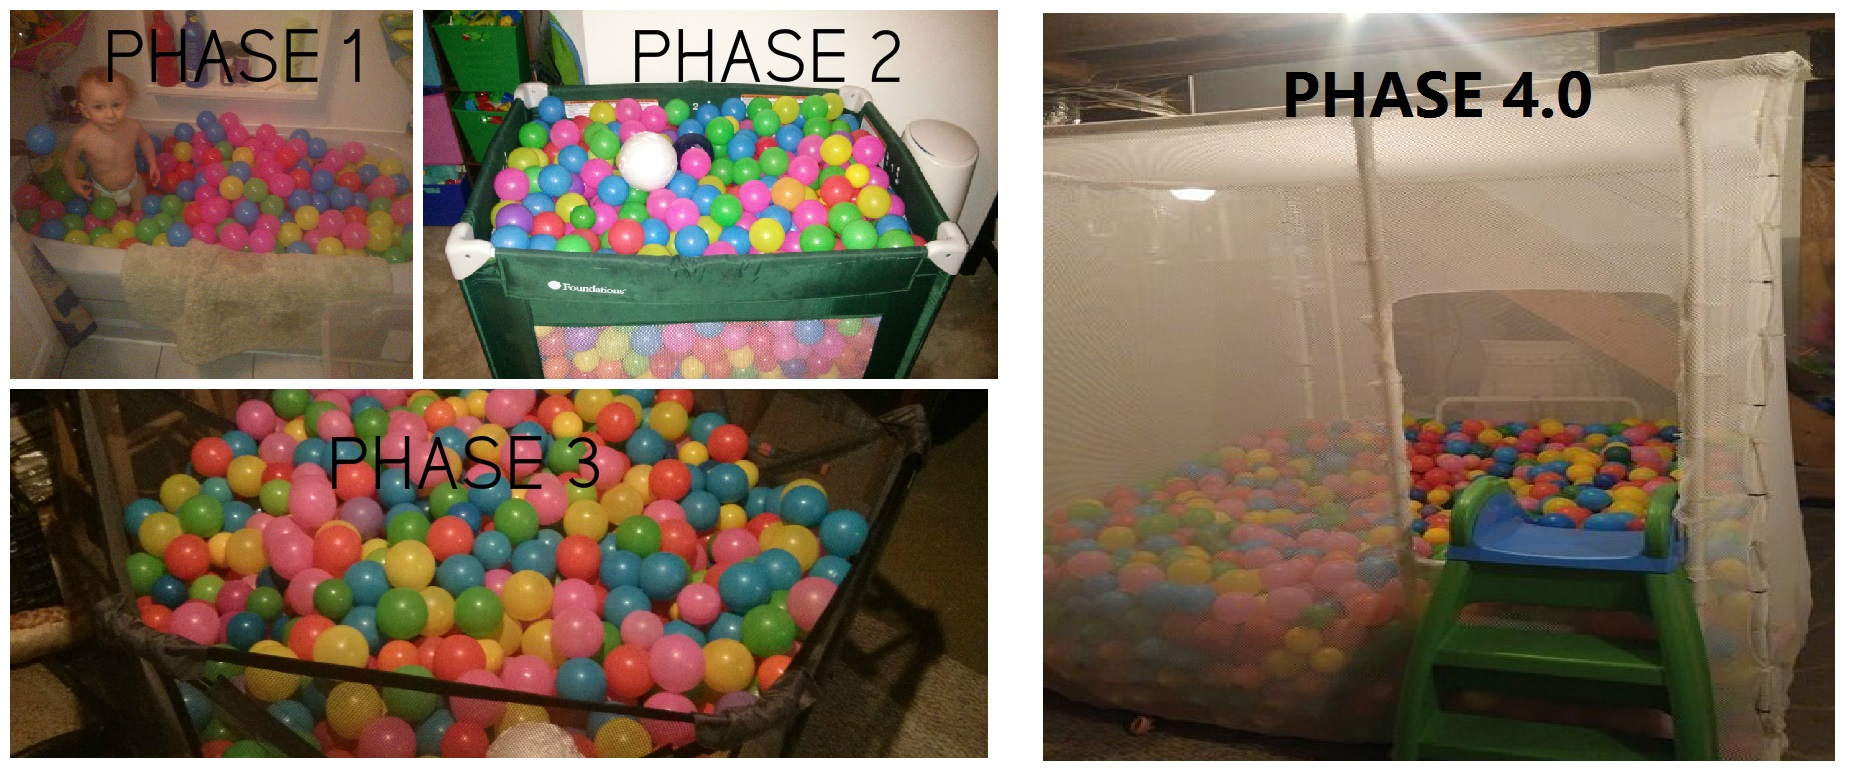 Phase 4.0 Ballpit